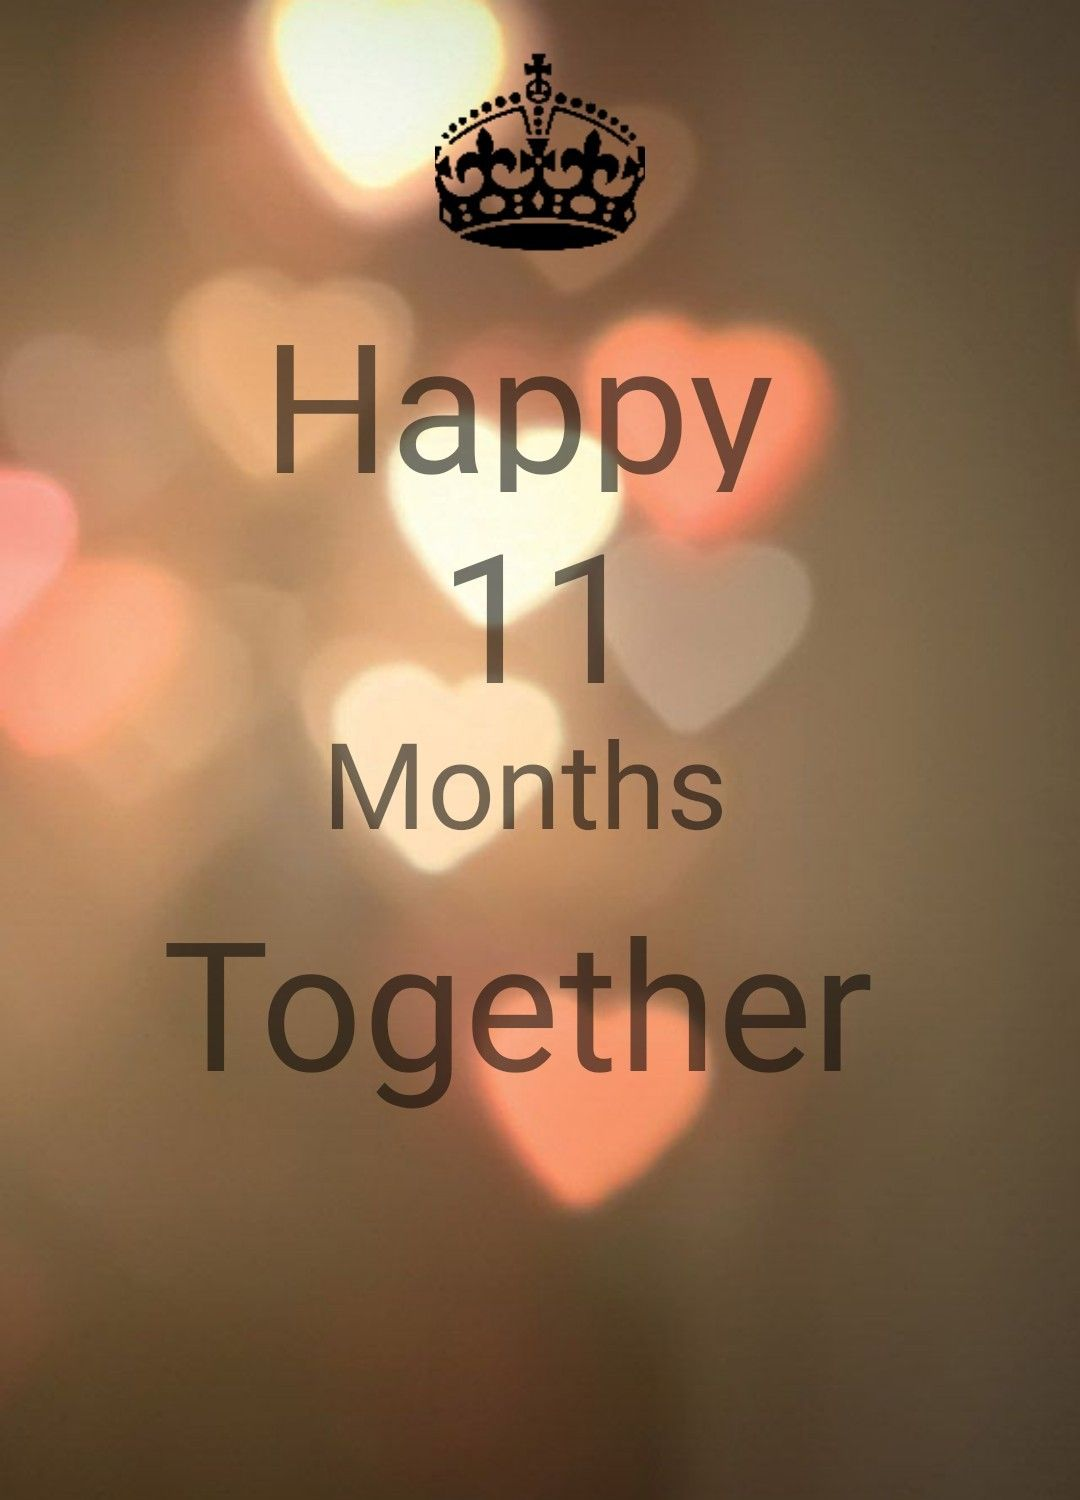 Happy 9 Months Quotes : happy, months, quotes, Jahakim, Saragih, Amazing, Happy, Months, Anniversary,, Birthday, Quotes, Friends,, Friend